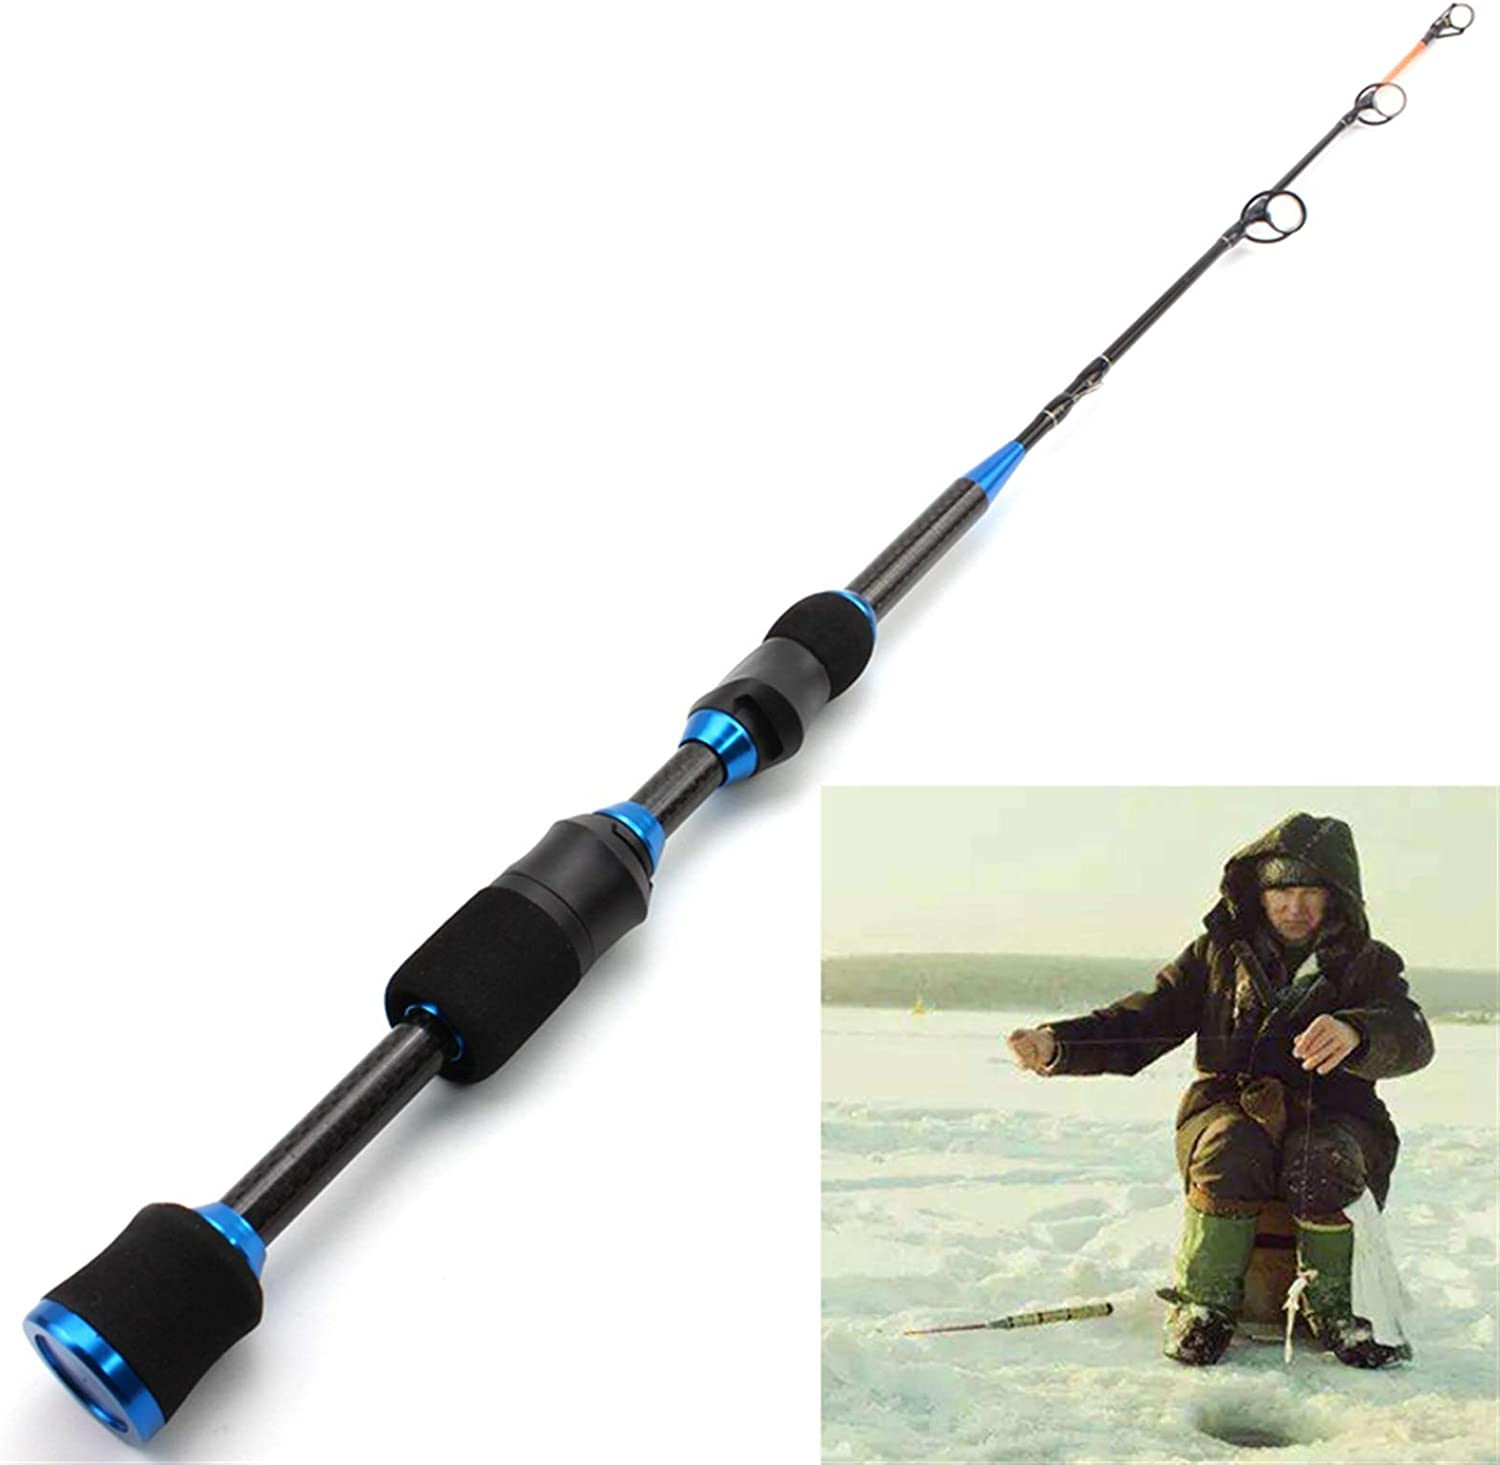 OFFicial H A Mesa Mall The Lowest Profits Winter G ice Transfer Fishing Rod